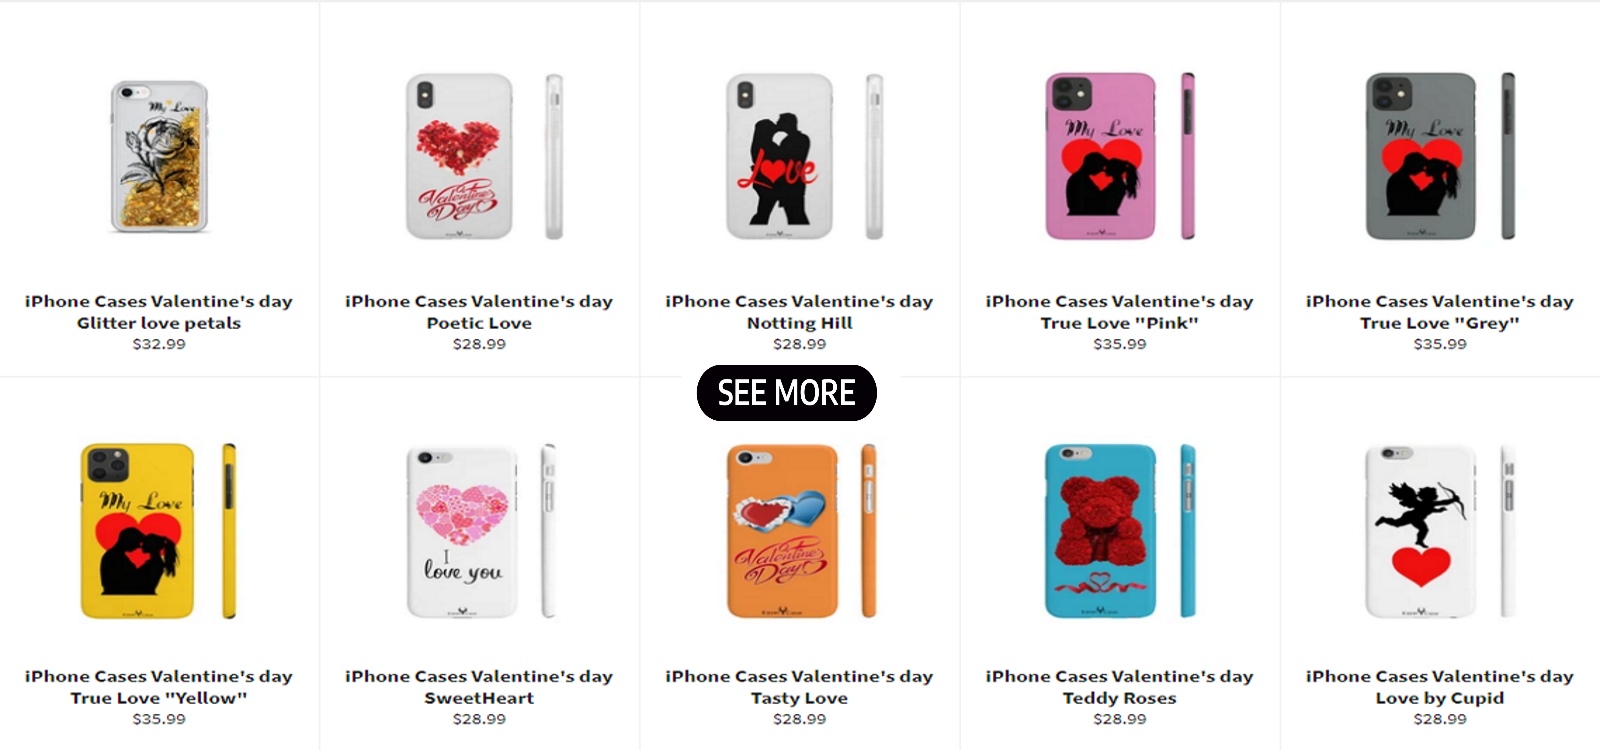 iPhone Cases Valentine's Day